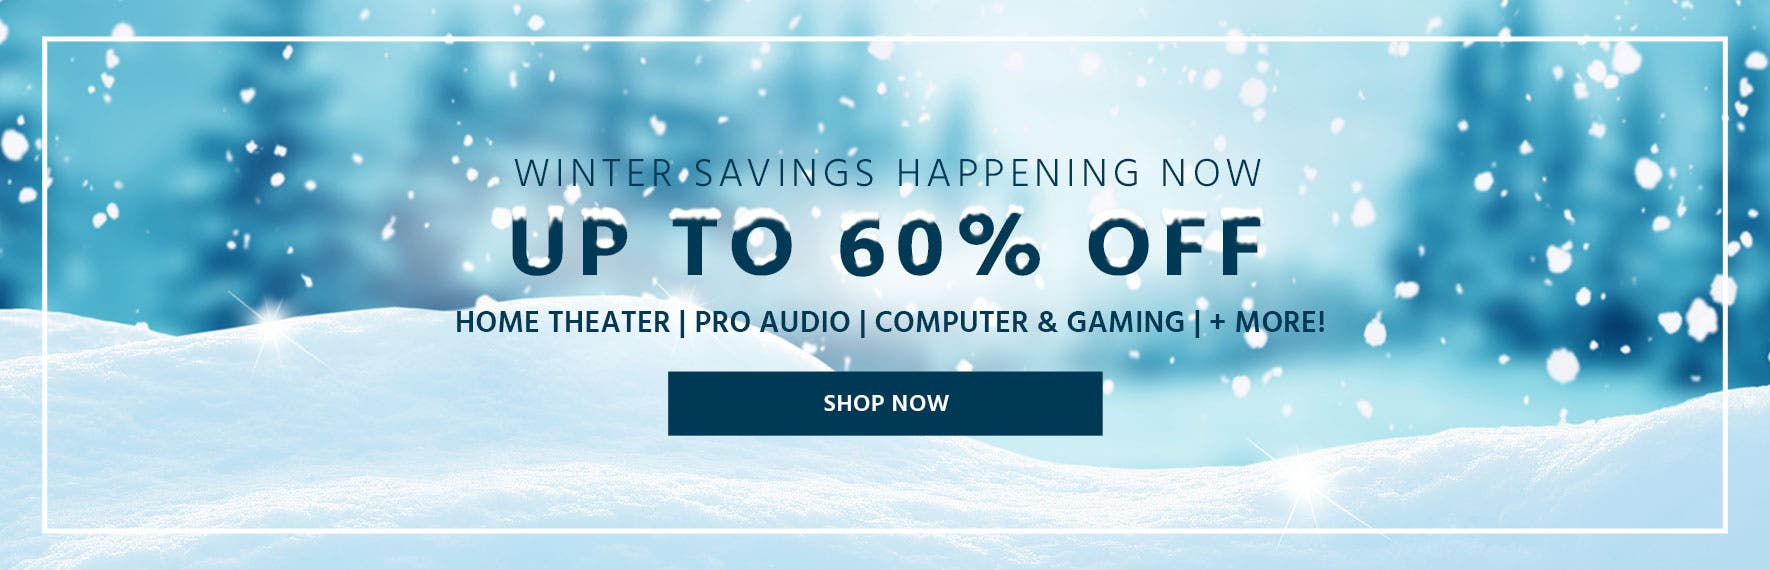 Winter Savings Happening Now, up to 60% off. home theater, pro audio, computer & gaming, + more.